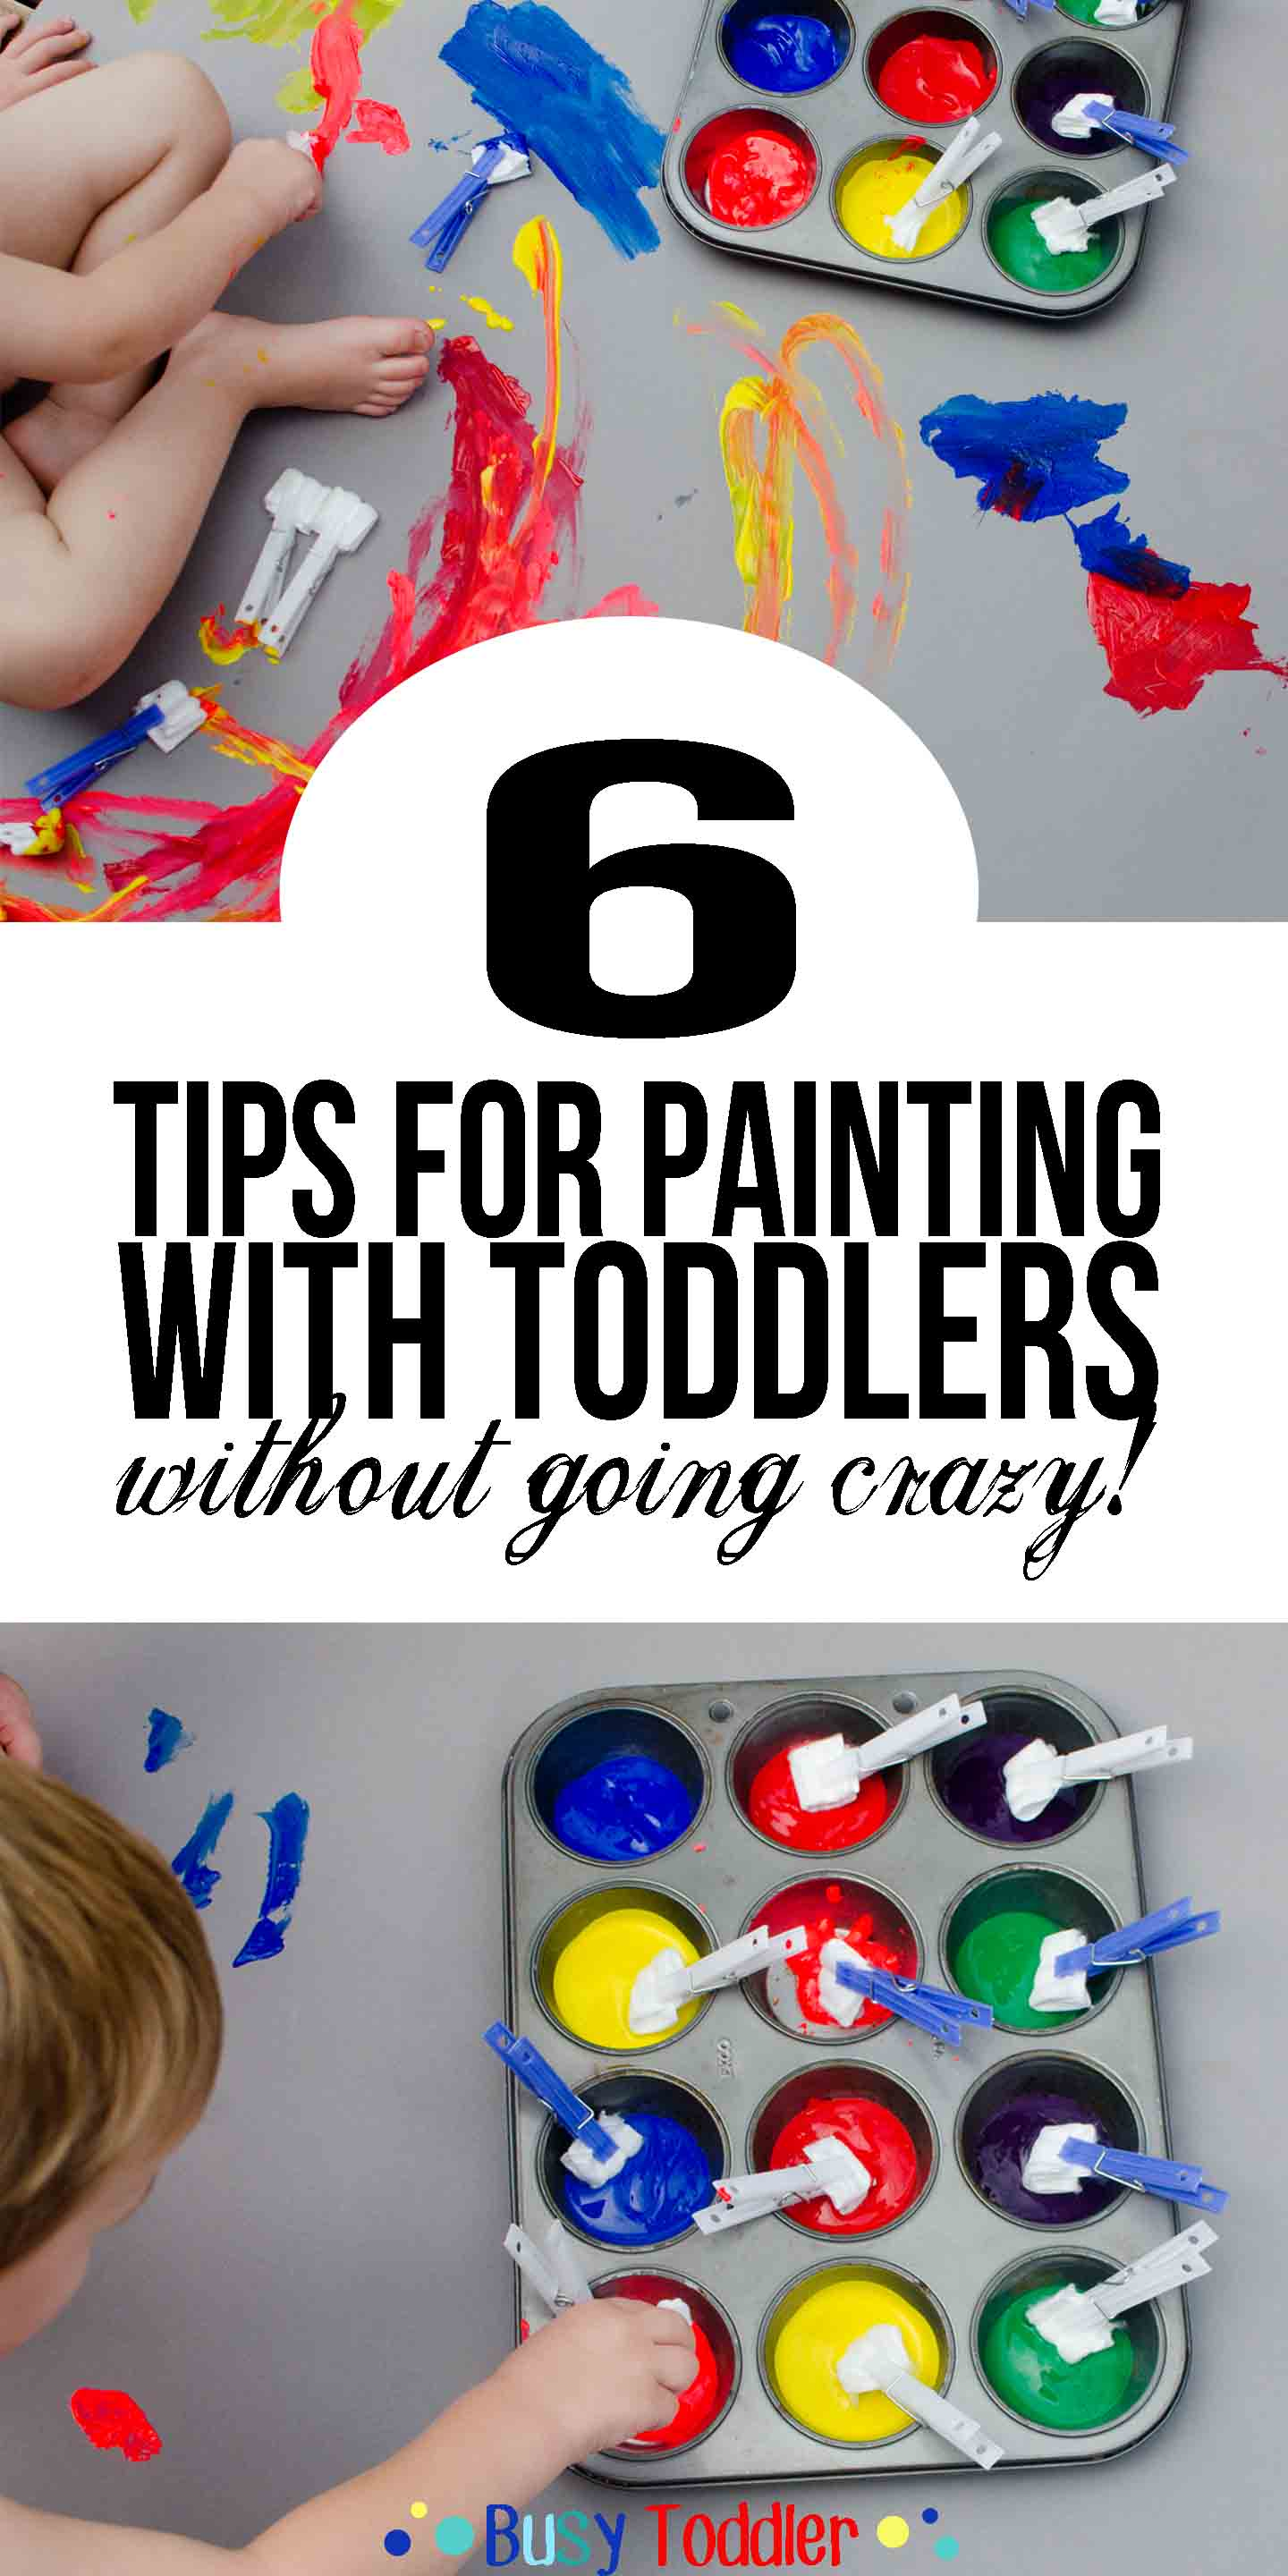 painting with toddler: 6 tips for a successful activity